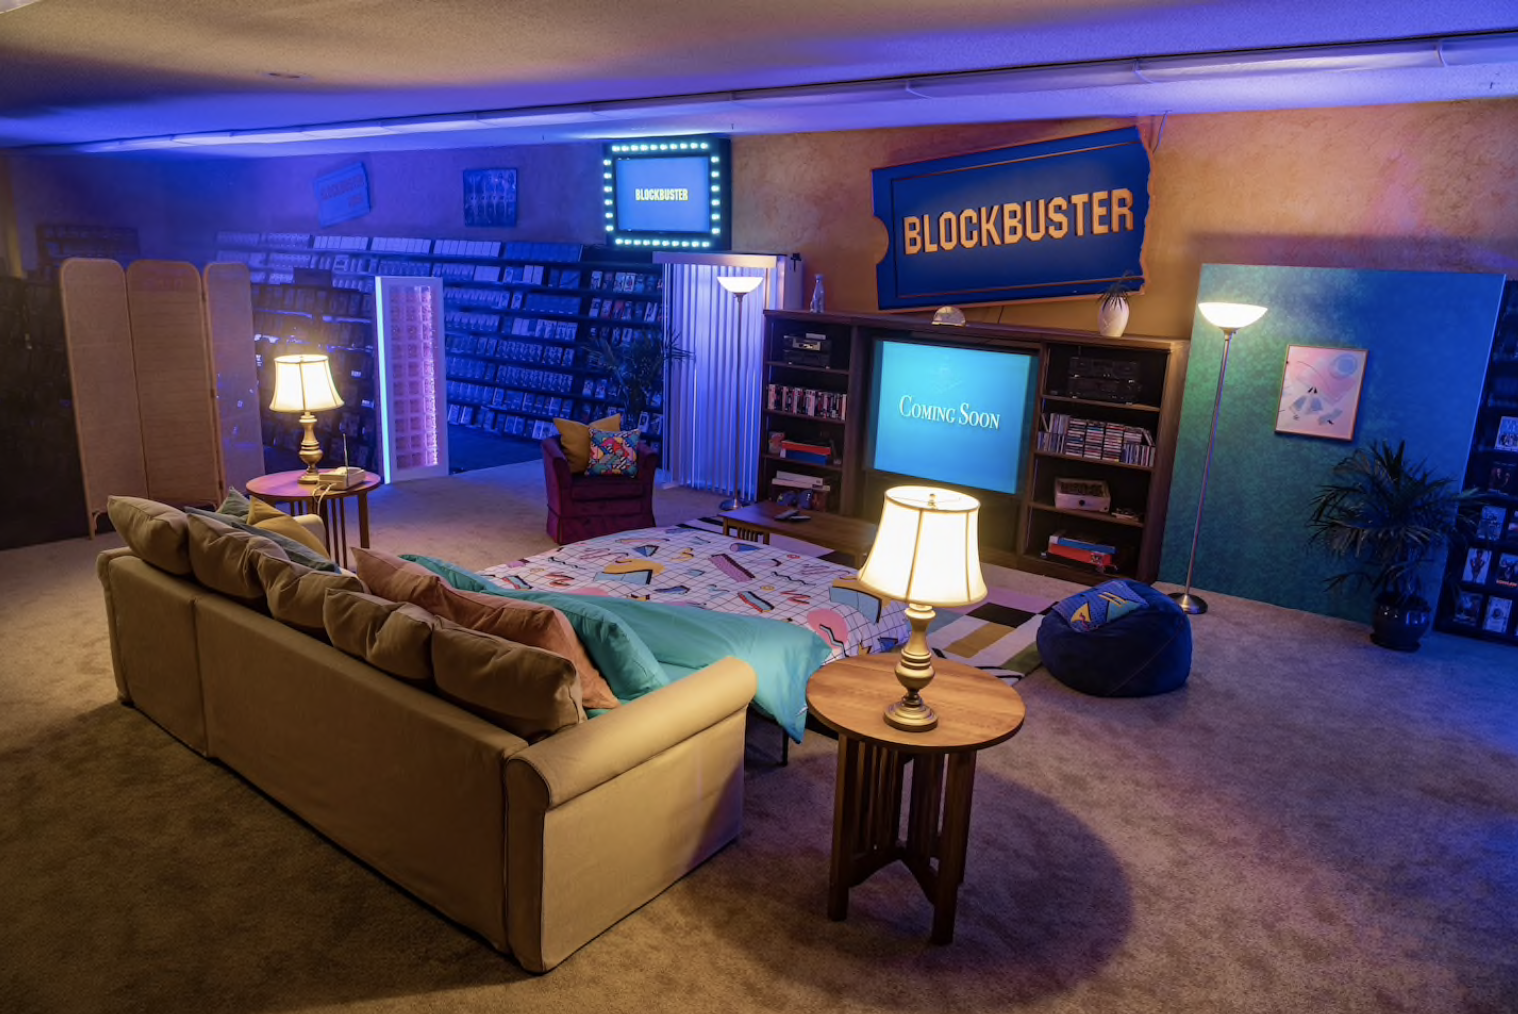 The Last Blockbuster Store In Existence Is Now Listed On AirBNB